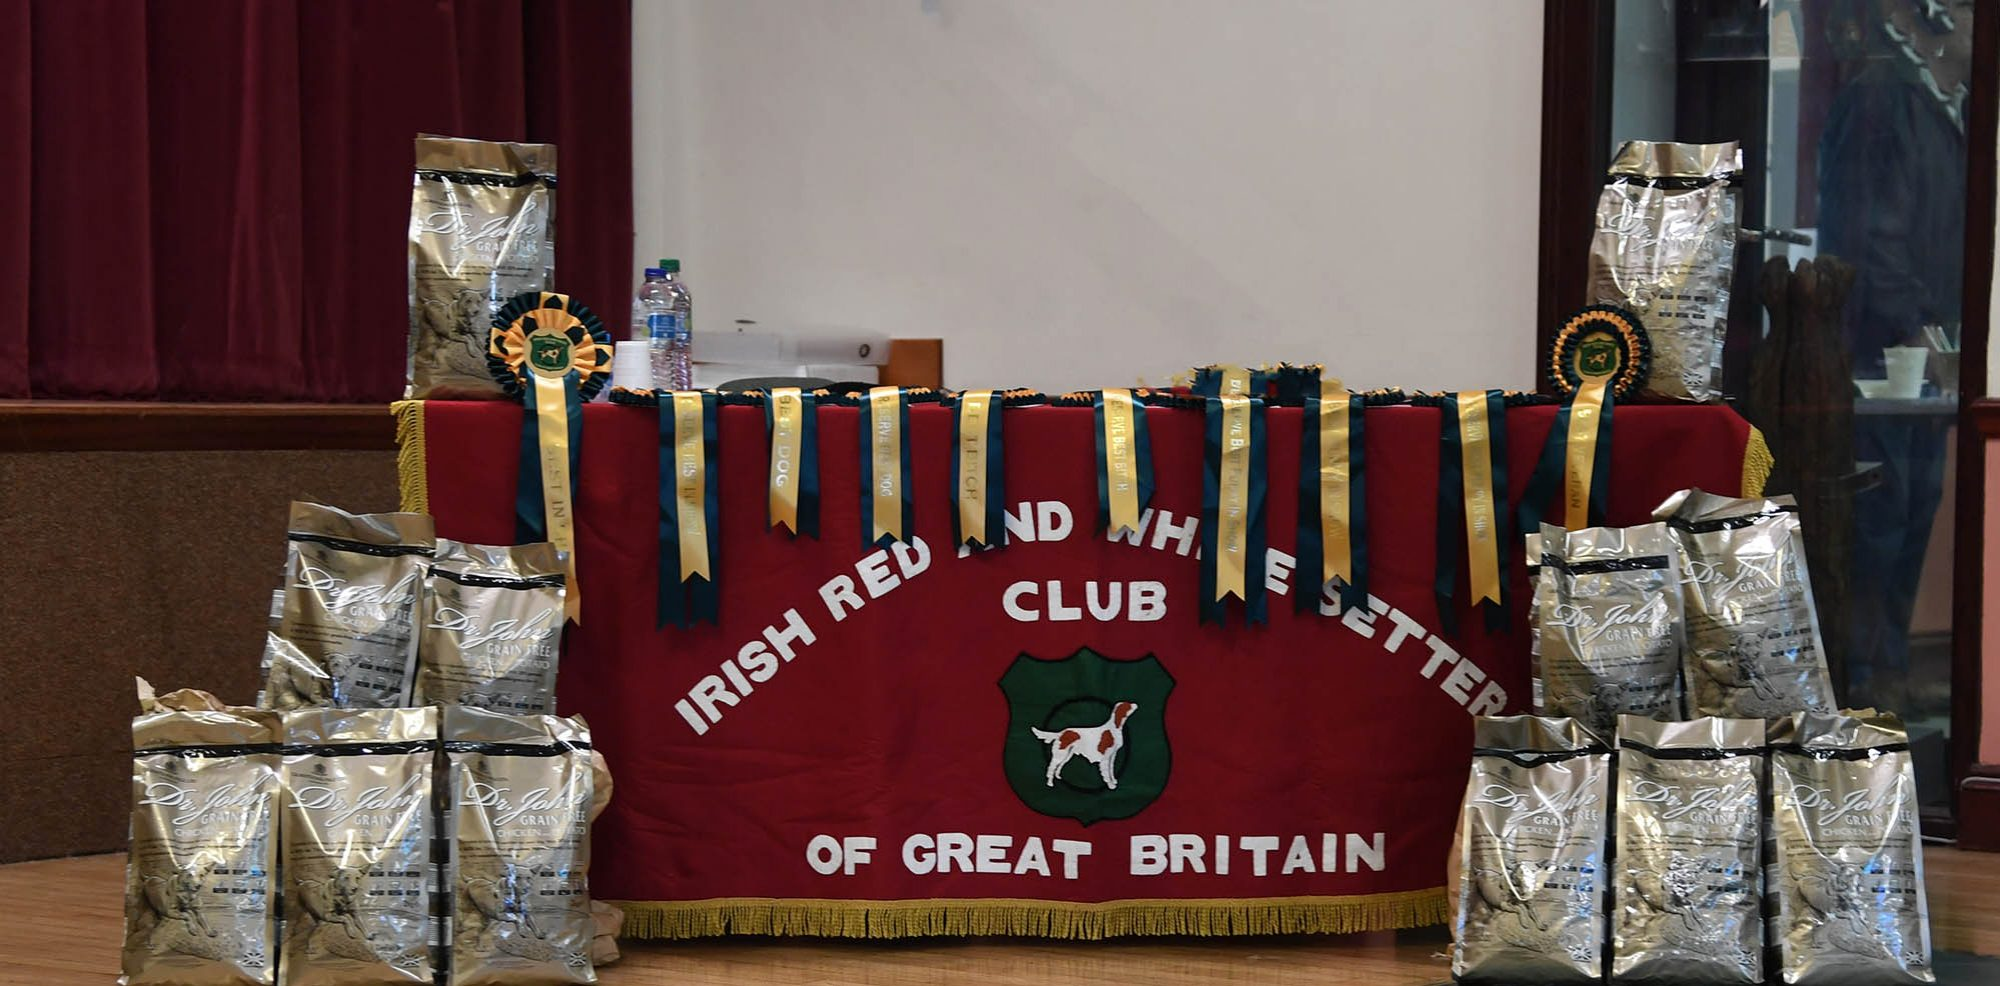 Irish Red and White Setter Club of GB